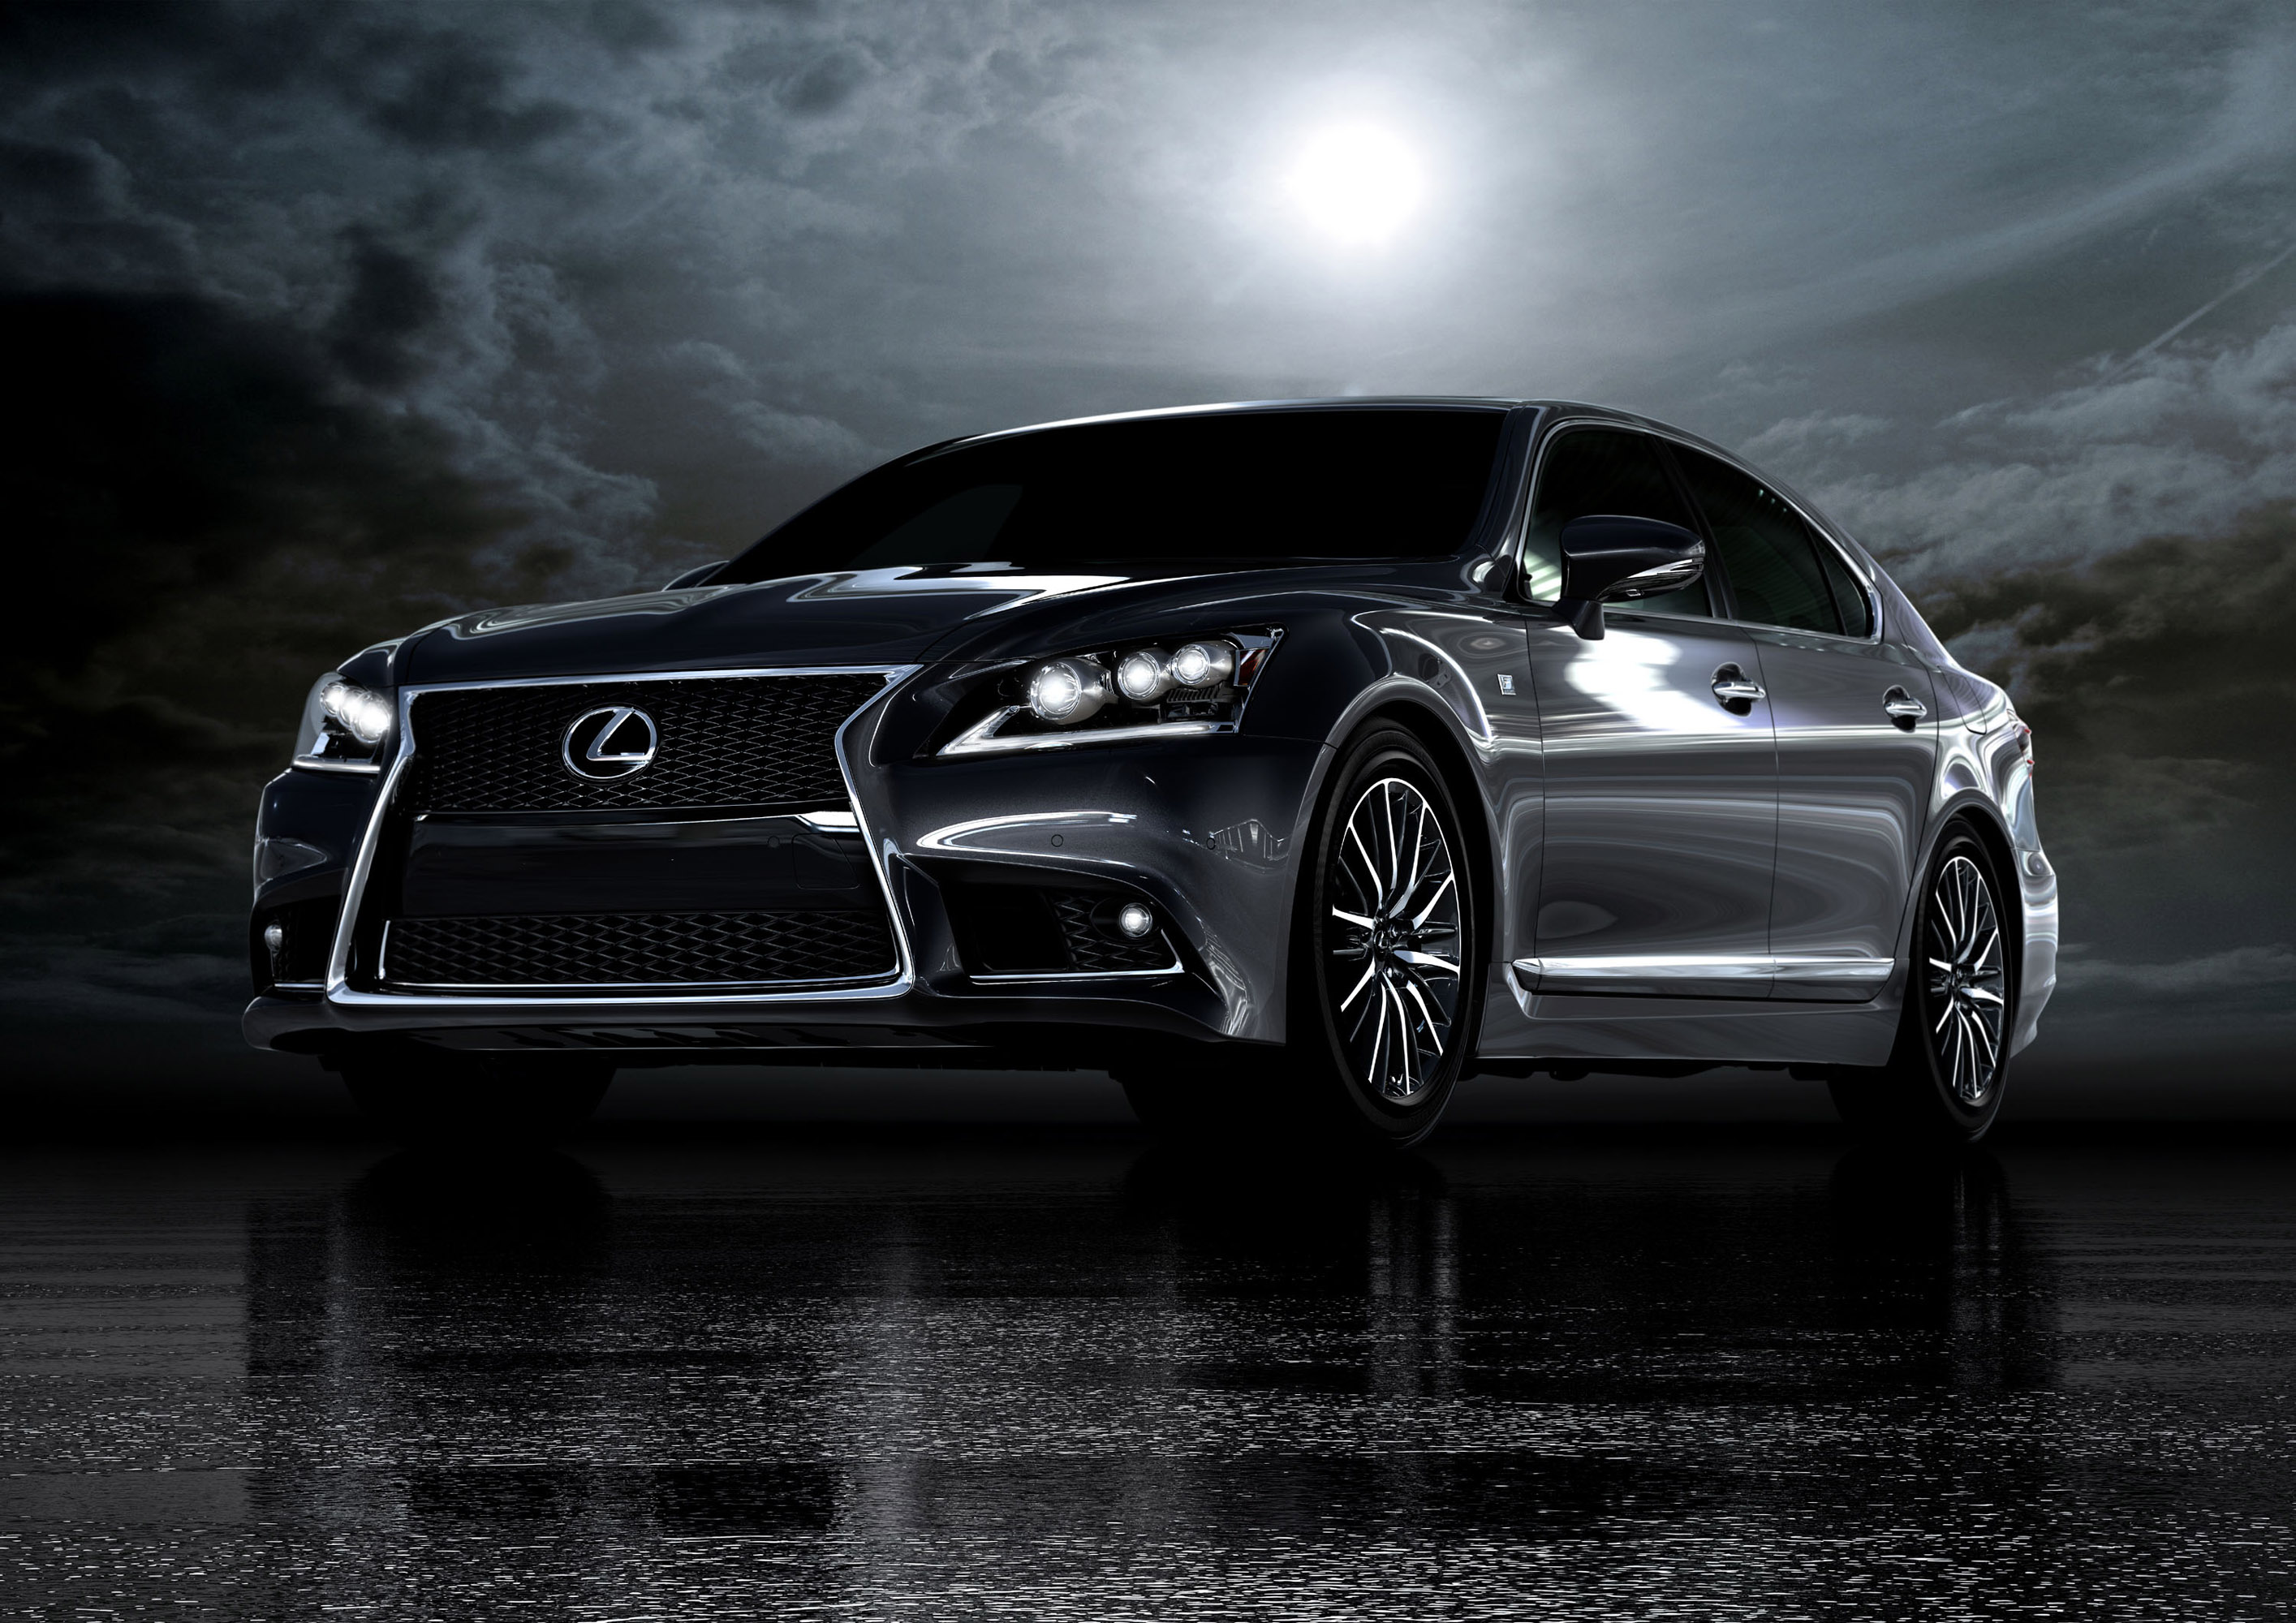 Lexus LS 460 F Sport photo #1